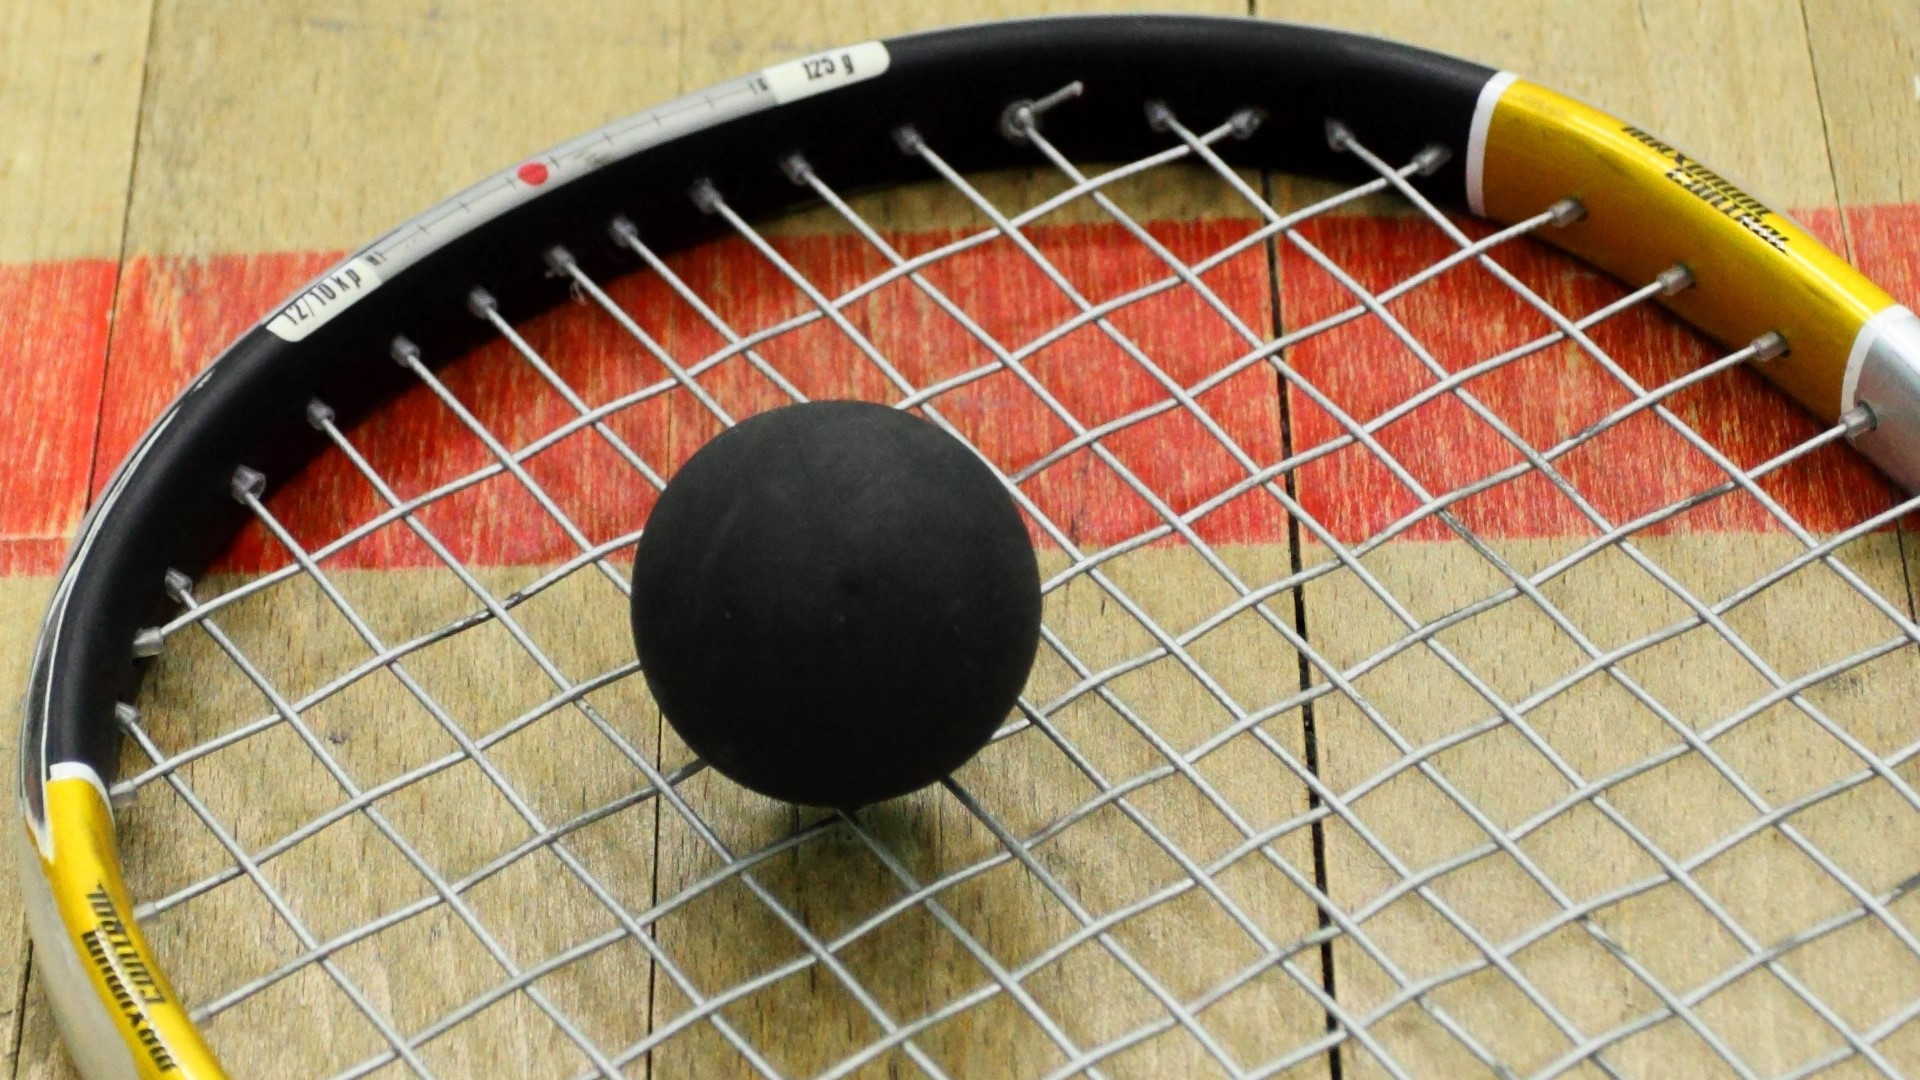 Best Squash Ball 2020: Shopping Guide & Review